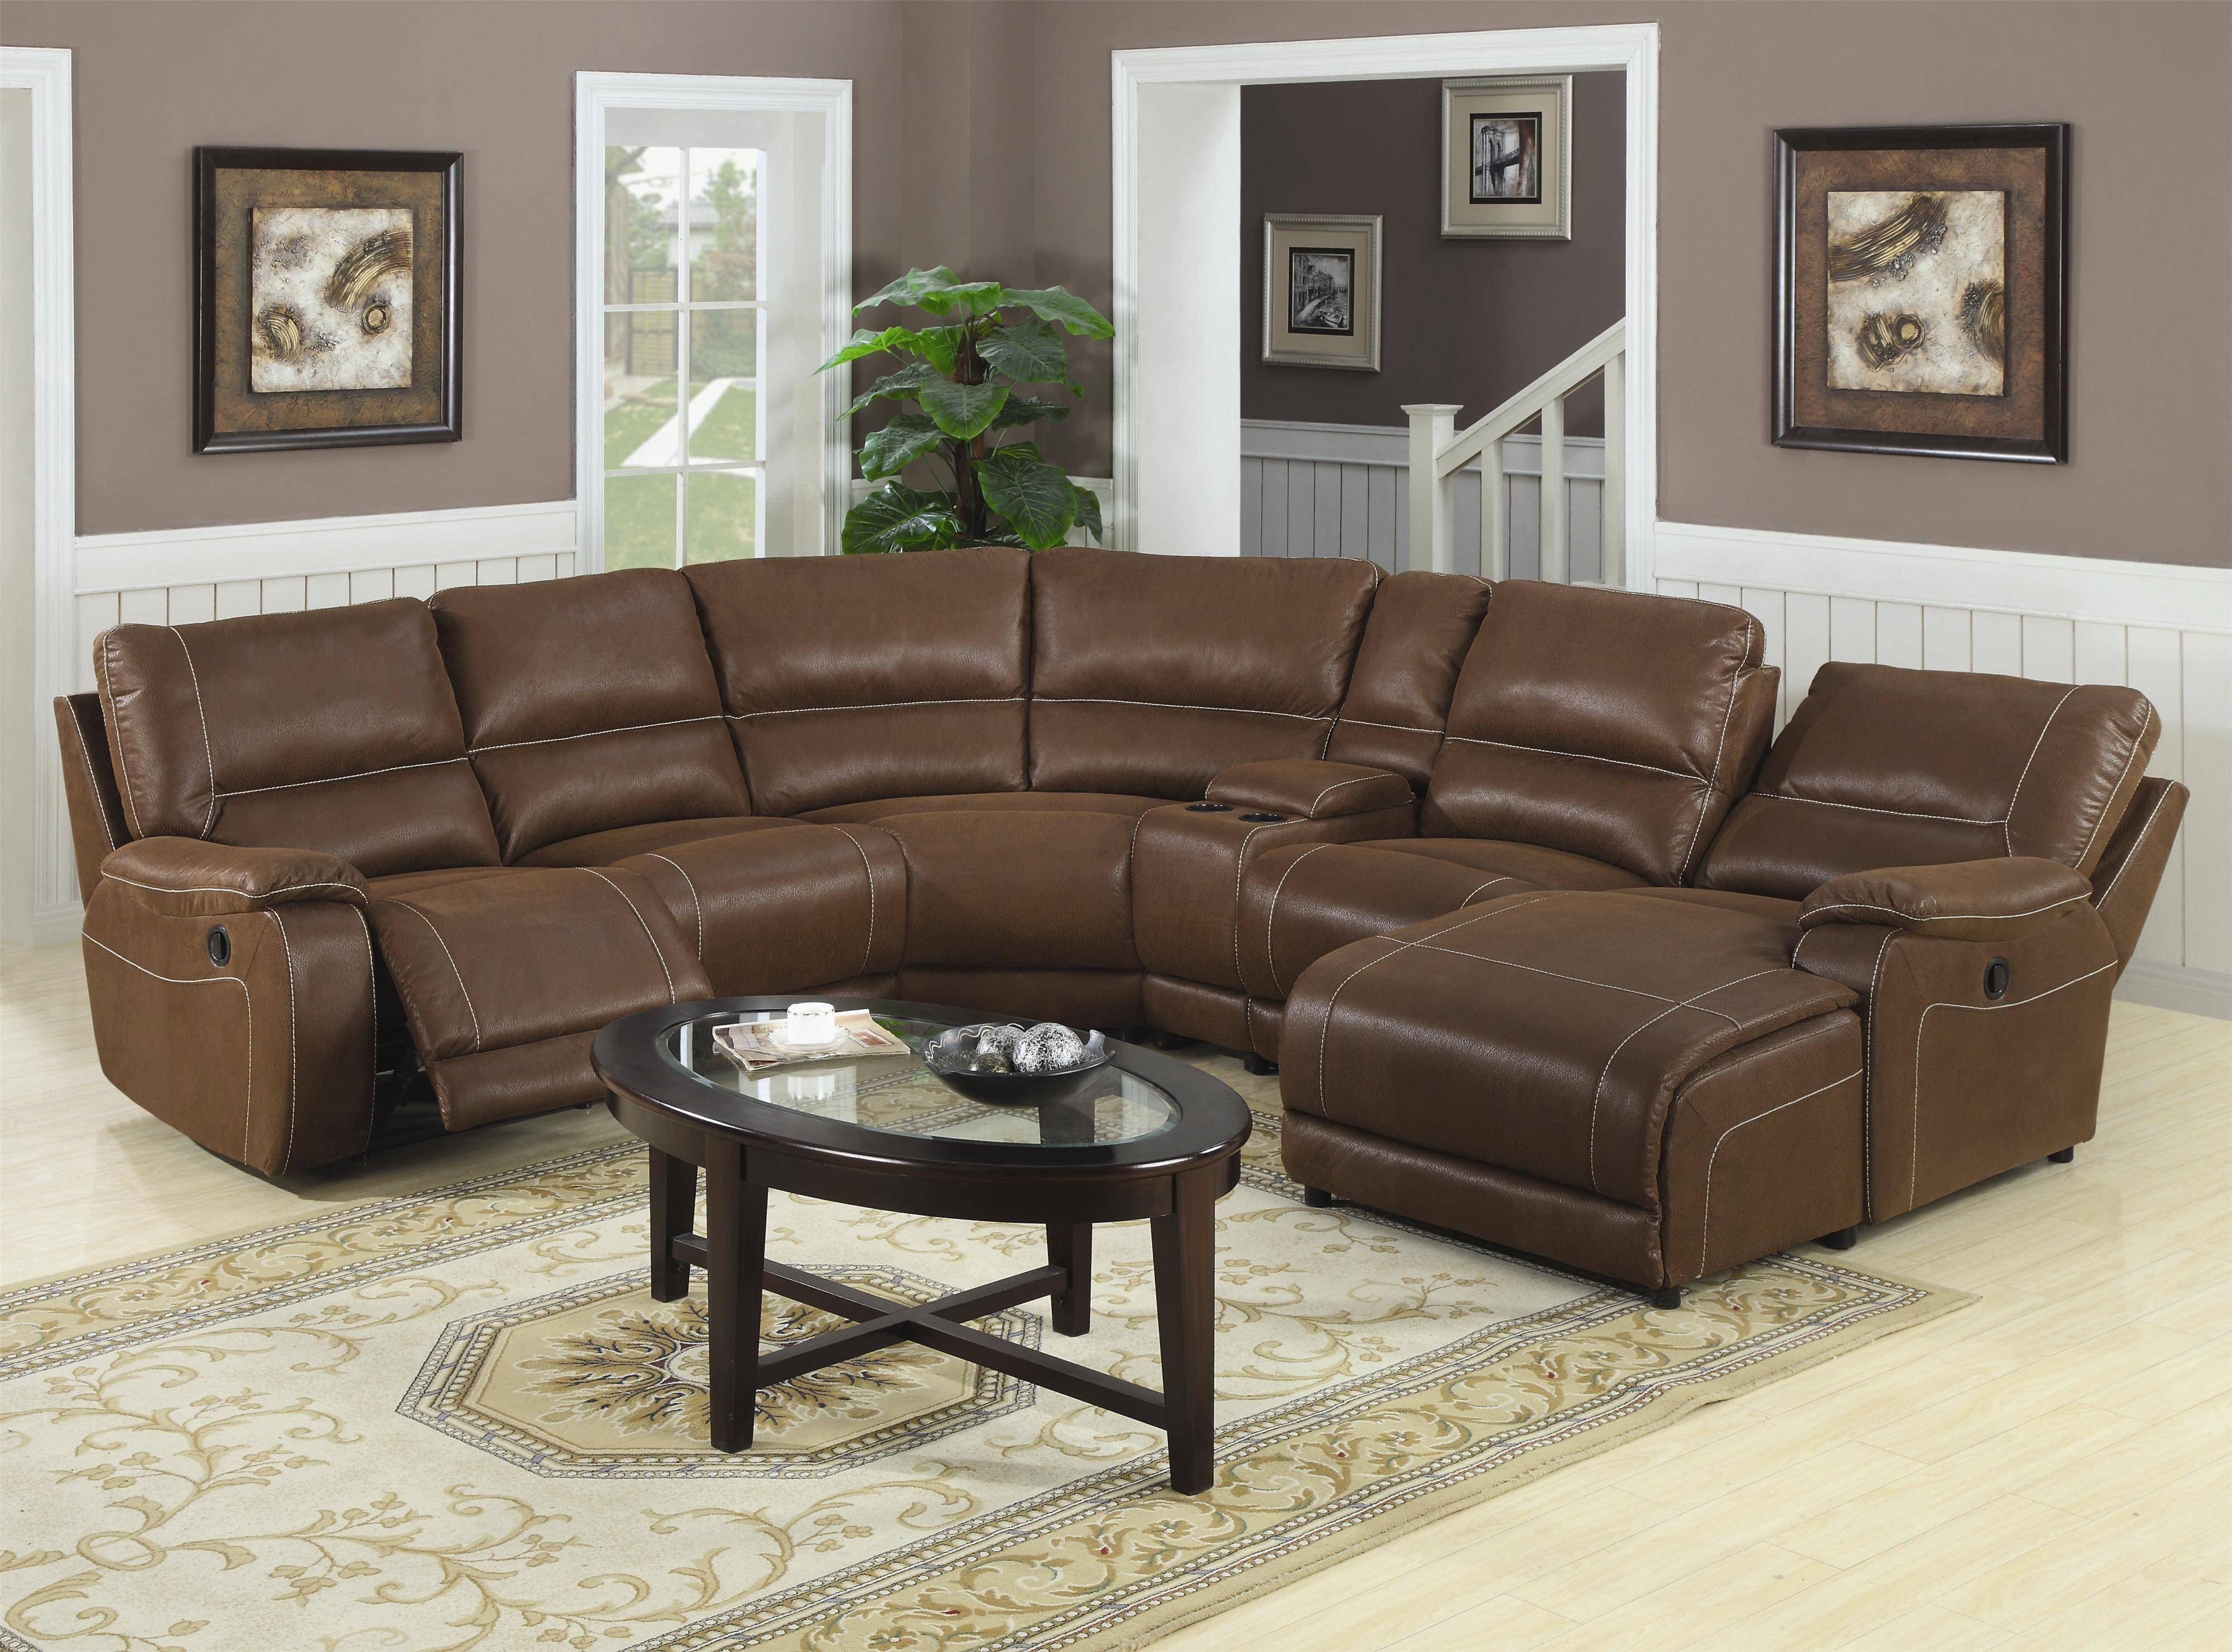 Furniture: Modern Leather Sectional Sofa With Recliners throughout Traditional Leather Sectional Sofas (Image 12 of 15)